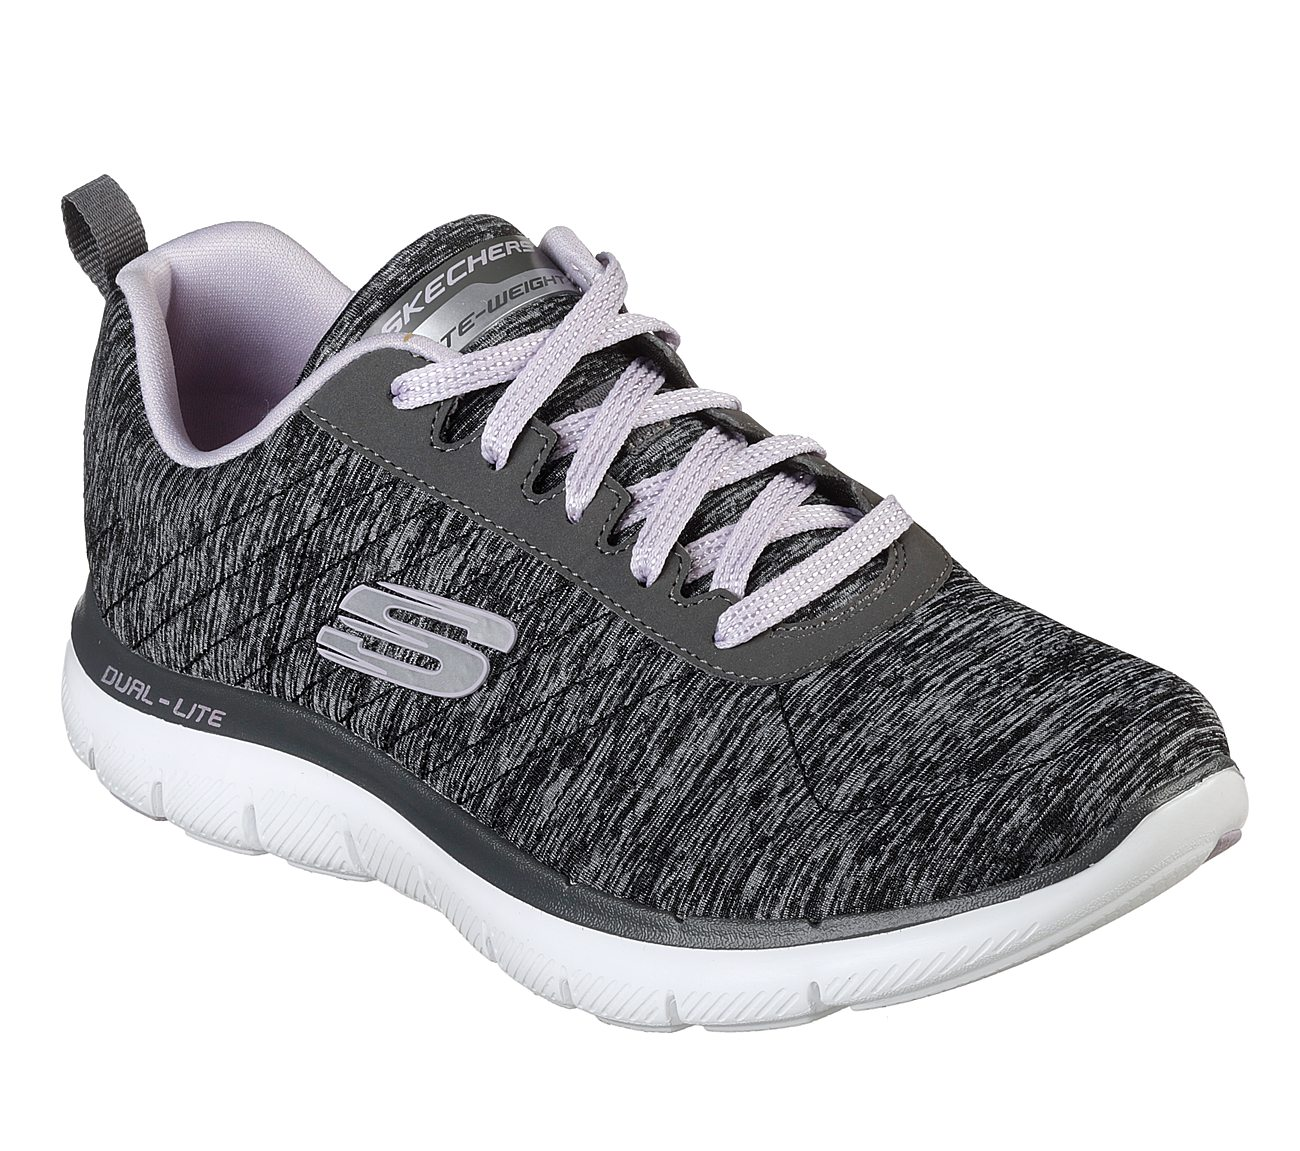 8f9a25f01f0e Buy SKECHERS Flex Appeal 2.0 SKECHERS Sport Shoes only £62.00